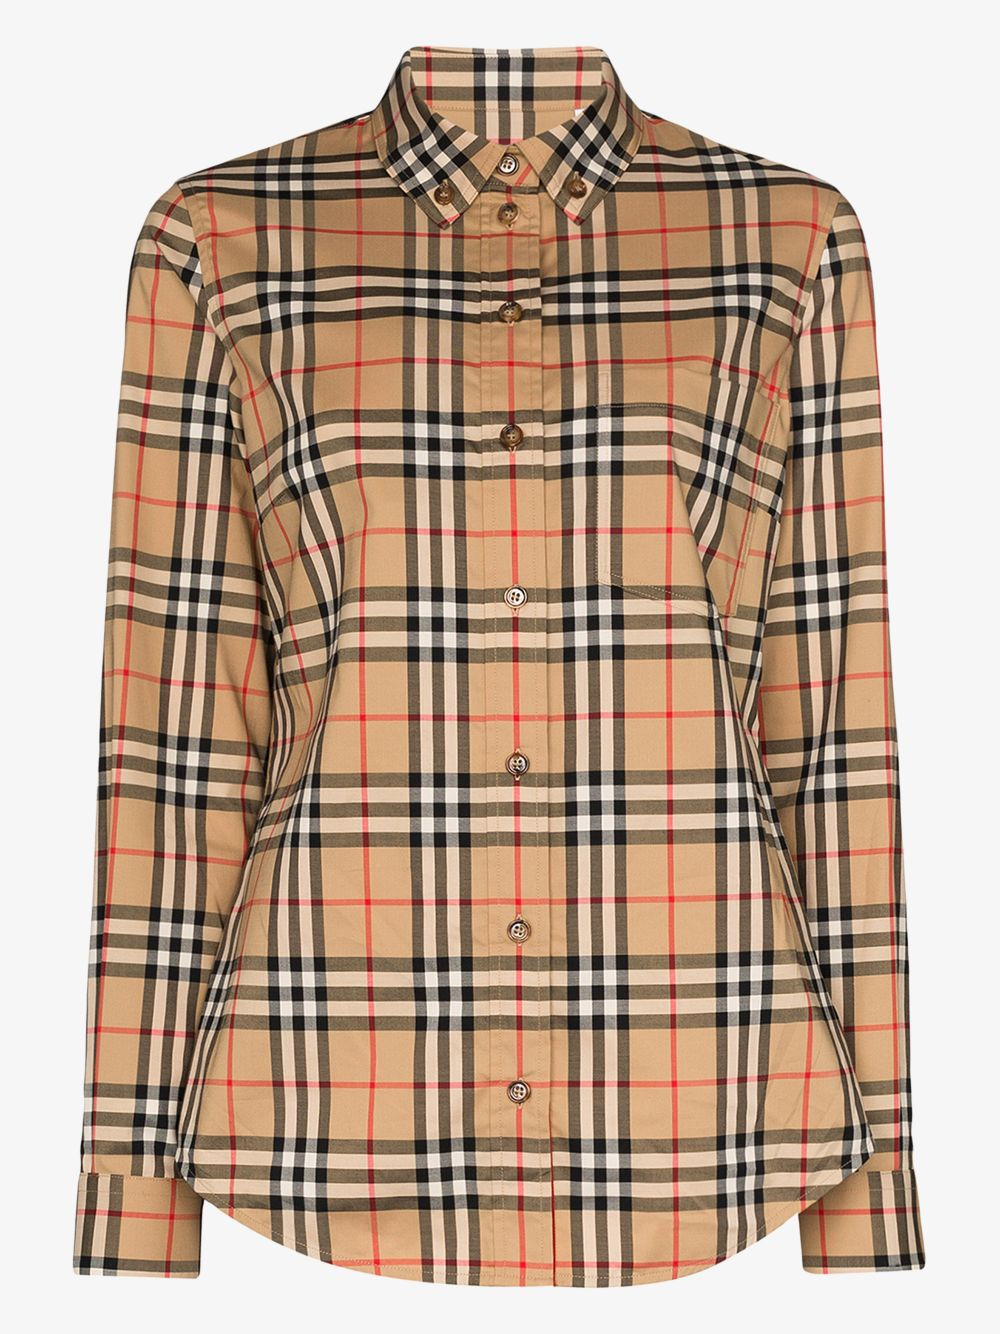 camicia beige in Burberry Vintage Check print BURBERRY | Camicie | 8022284-LAPWINGA7028